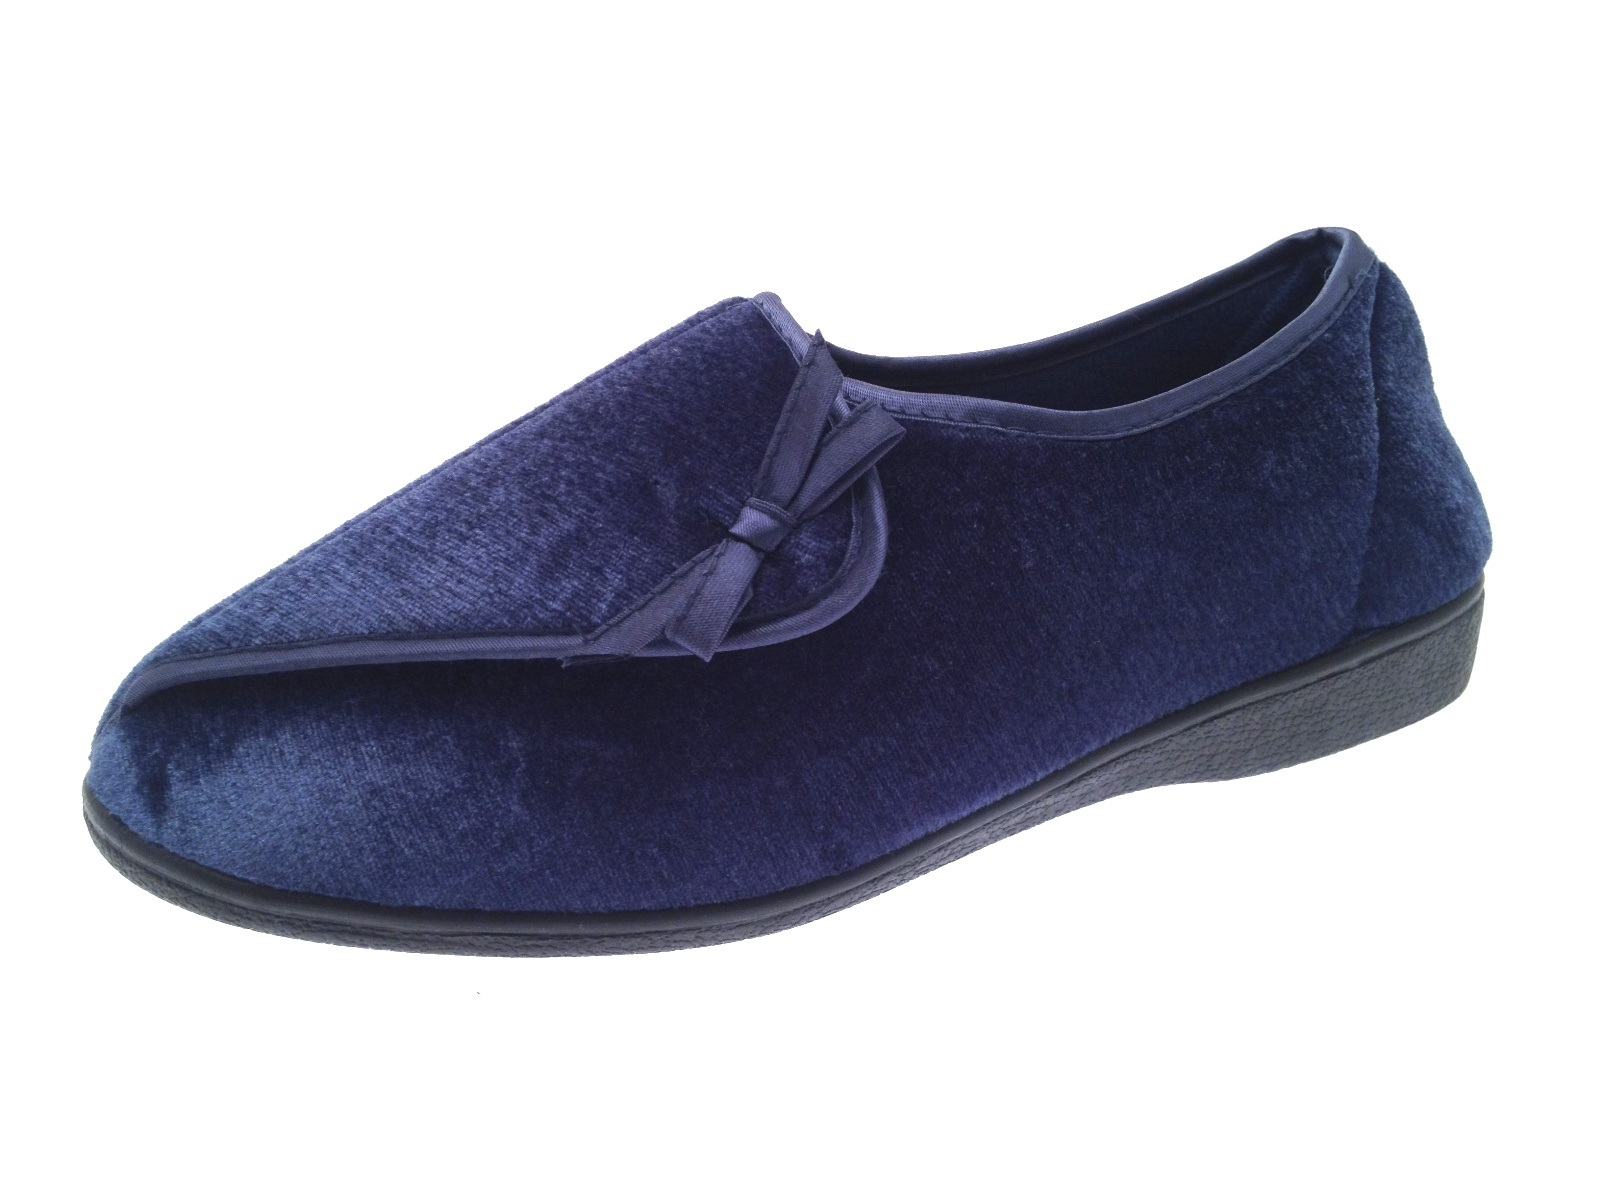 Walking Shoes For Wom En